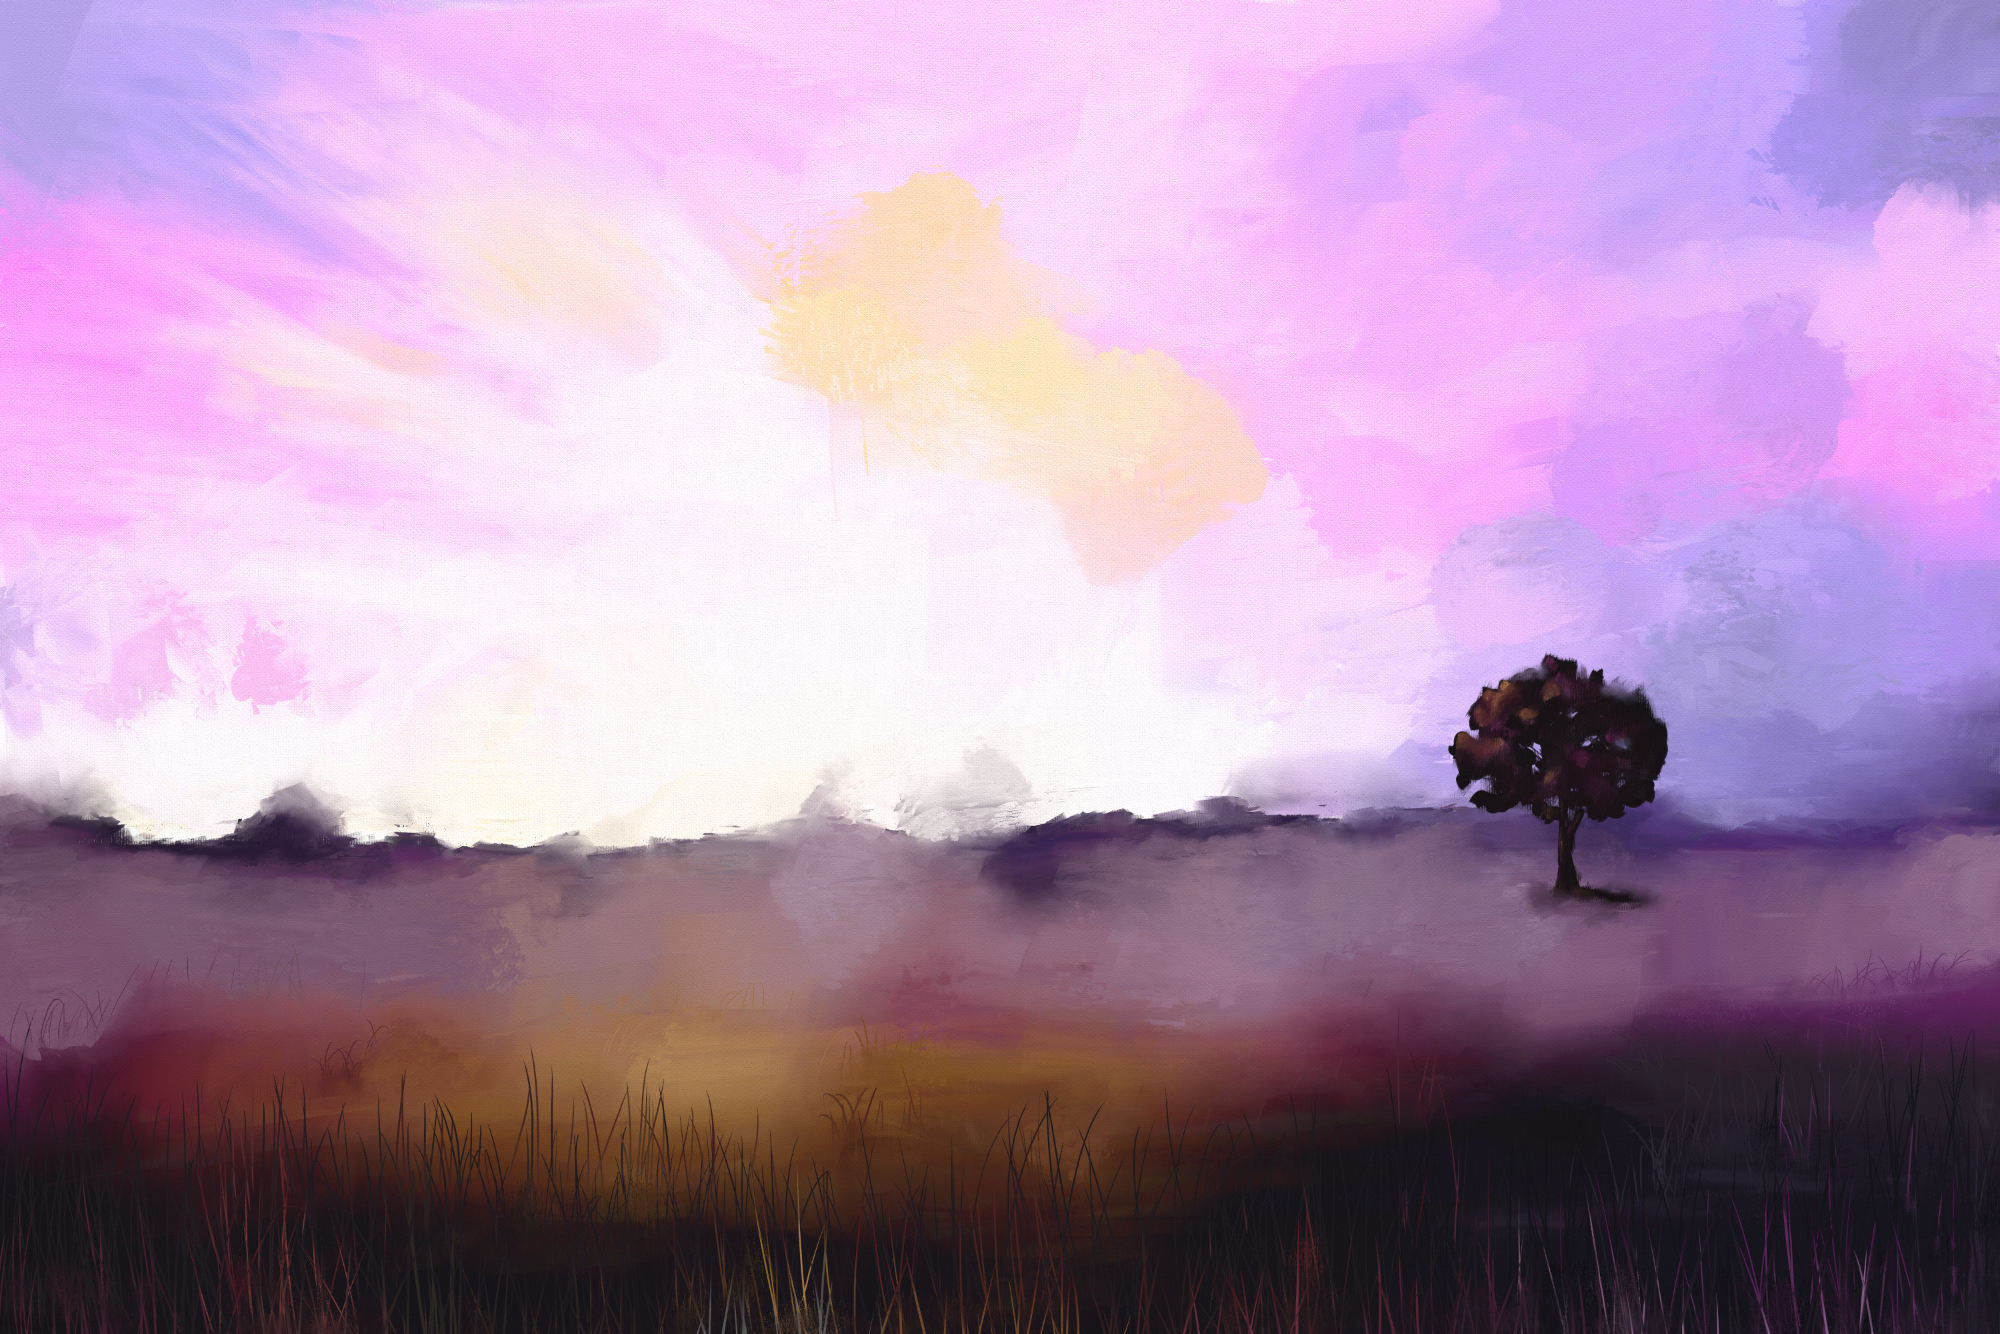 Digital mixed media painting of a landscape with a winter sky